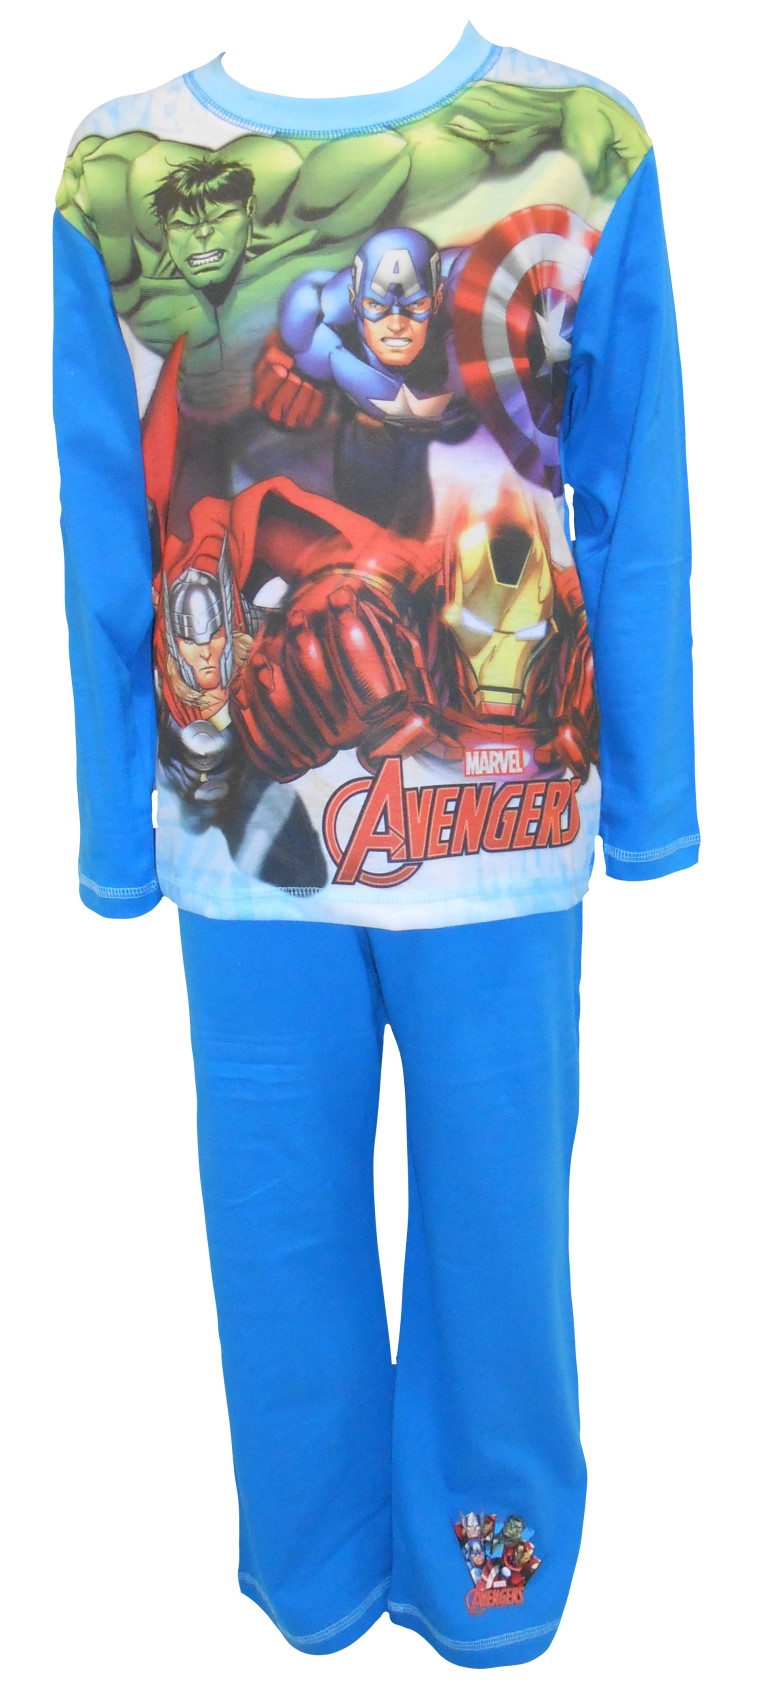 Shop for boys avengers pajamas online at Target. Free shipping on purchases over $35 and save 5% every day with your Target REDcard.